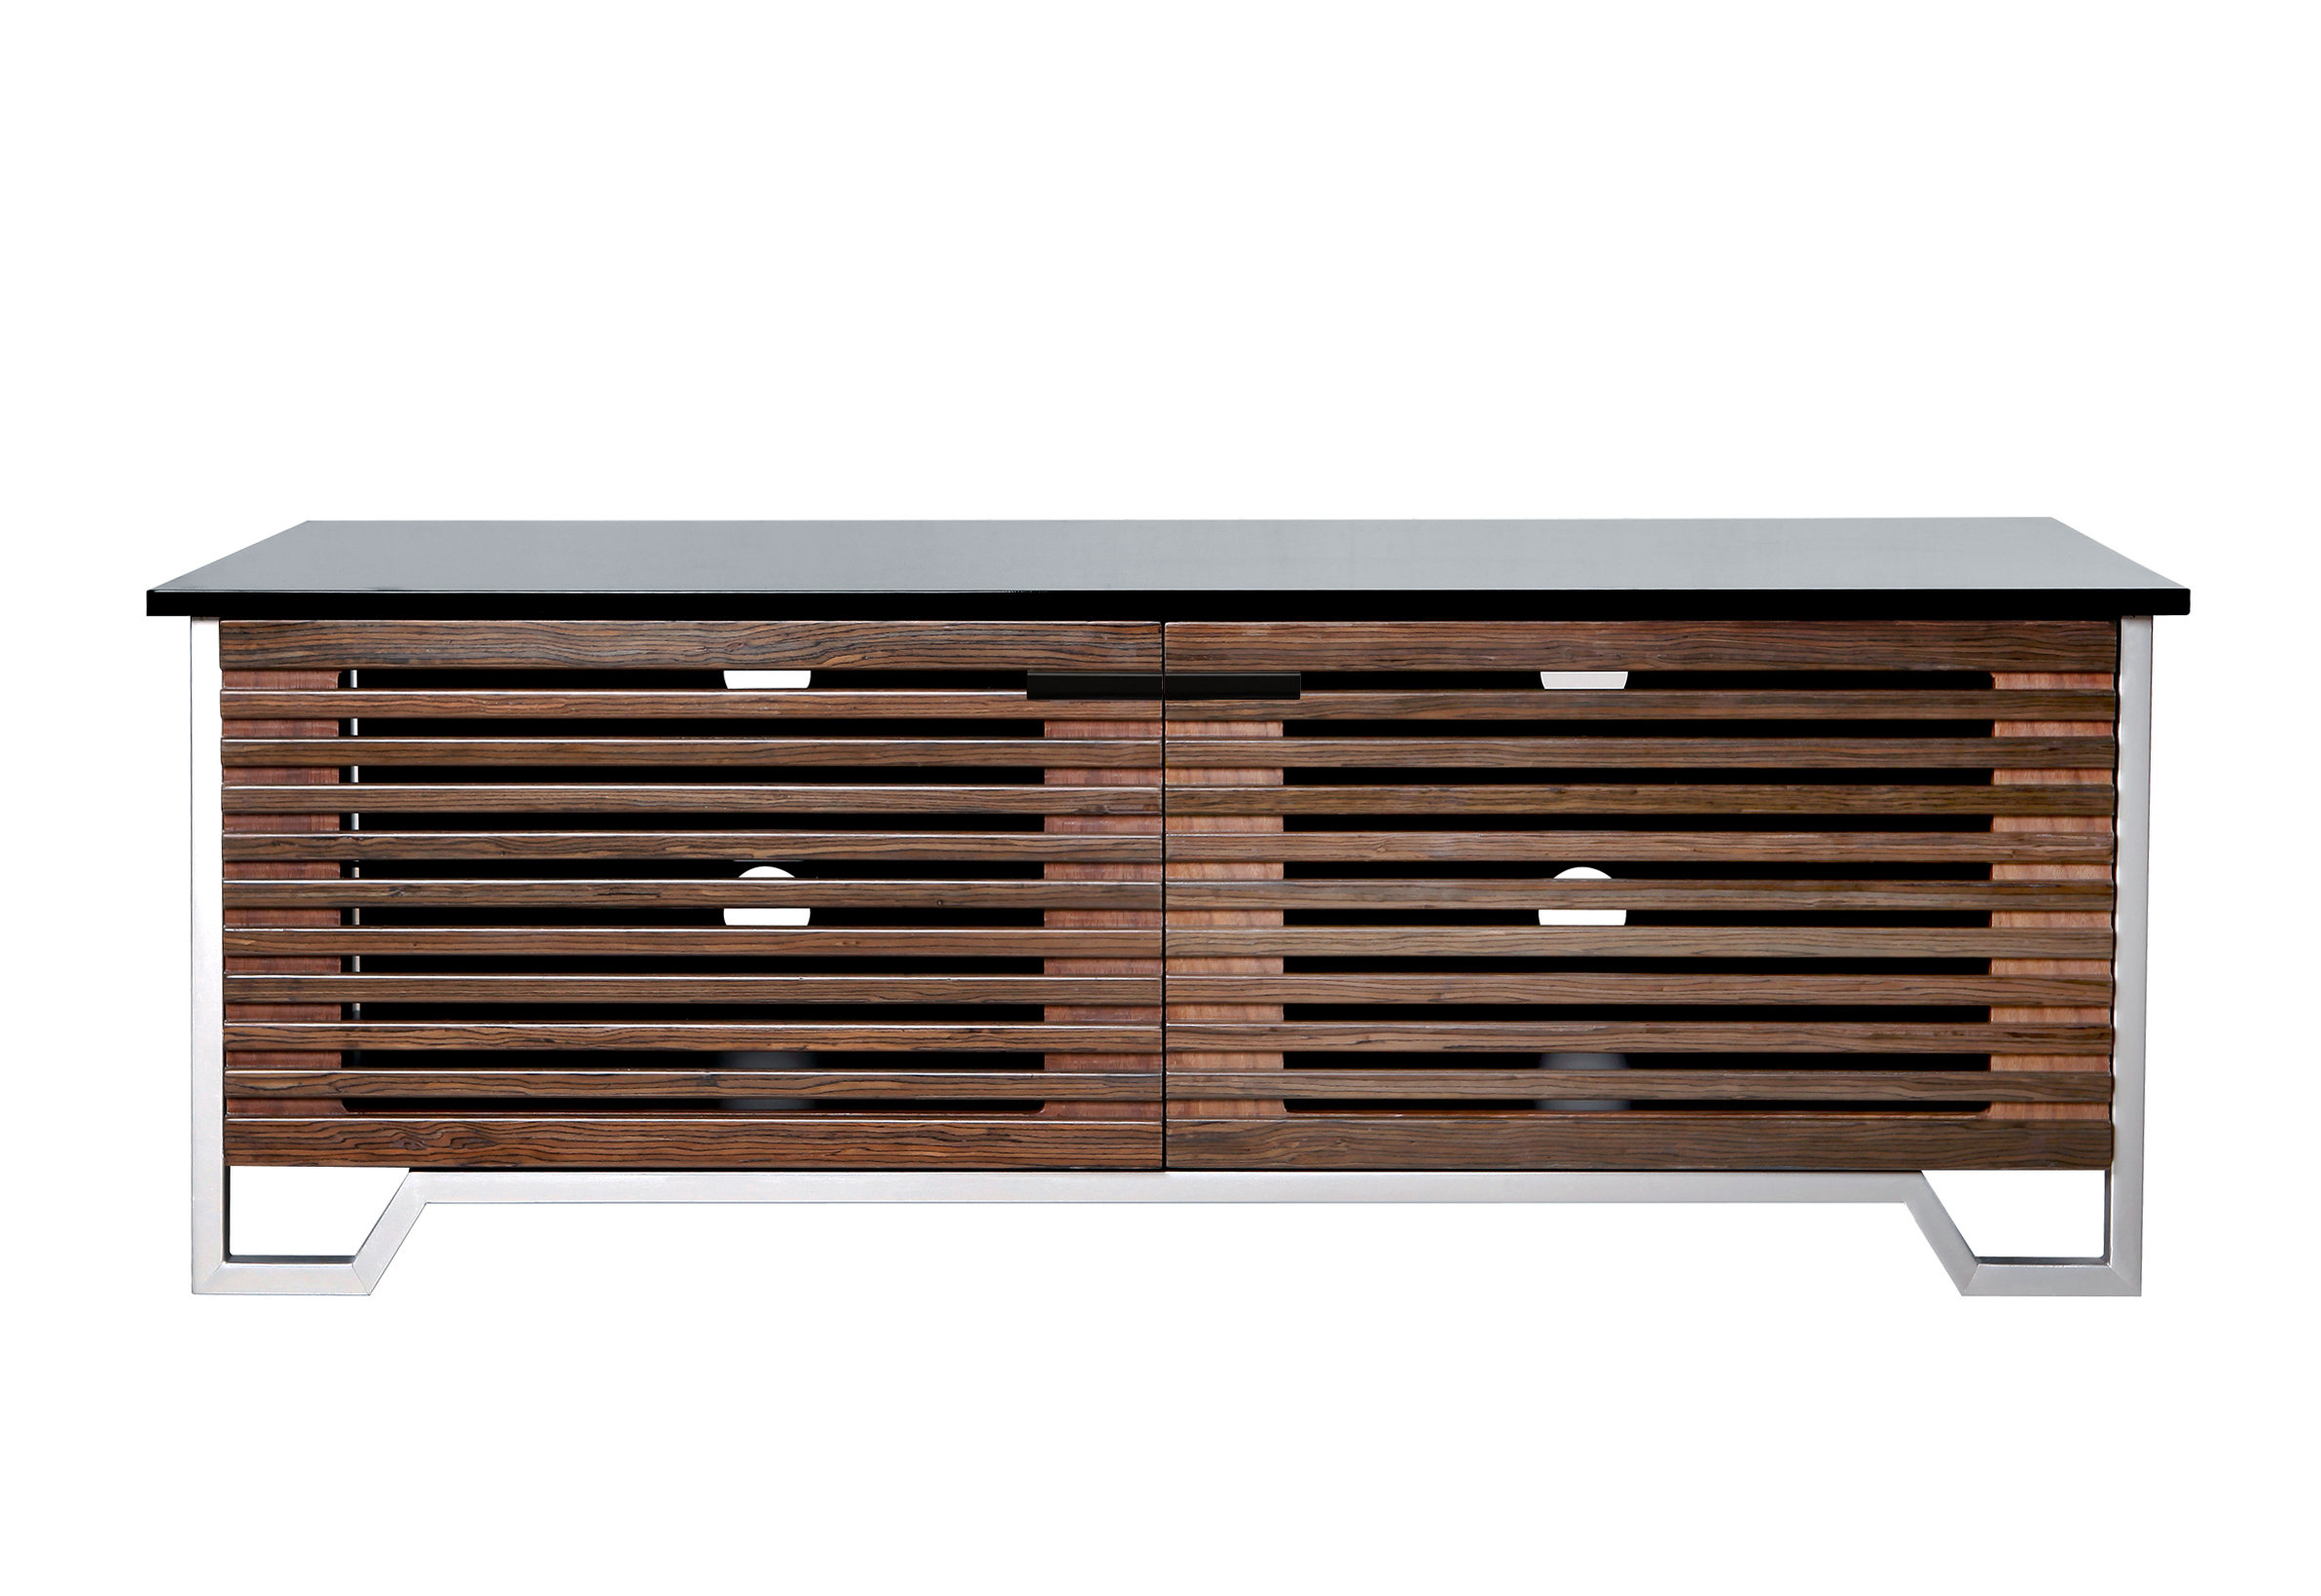 Solid Wood Modern Tv Stands You'll Love | Wayfair.co.uk Regarding Abbot 60 Inch Tv Stands (Gallery 5 of 20)